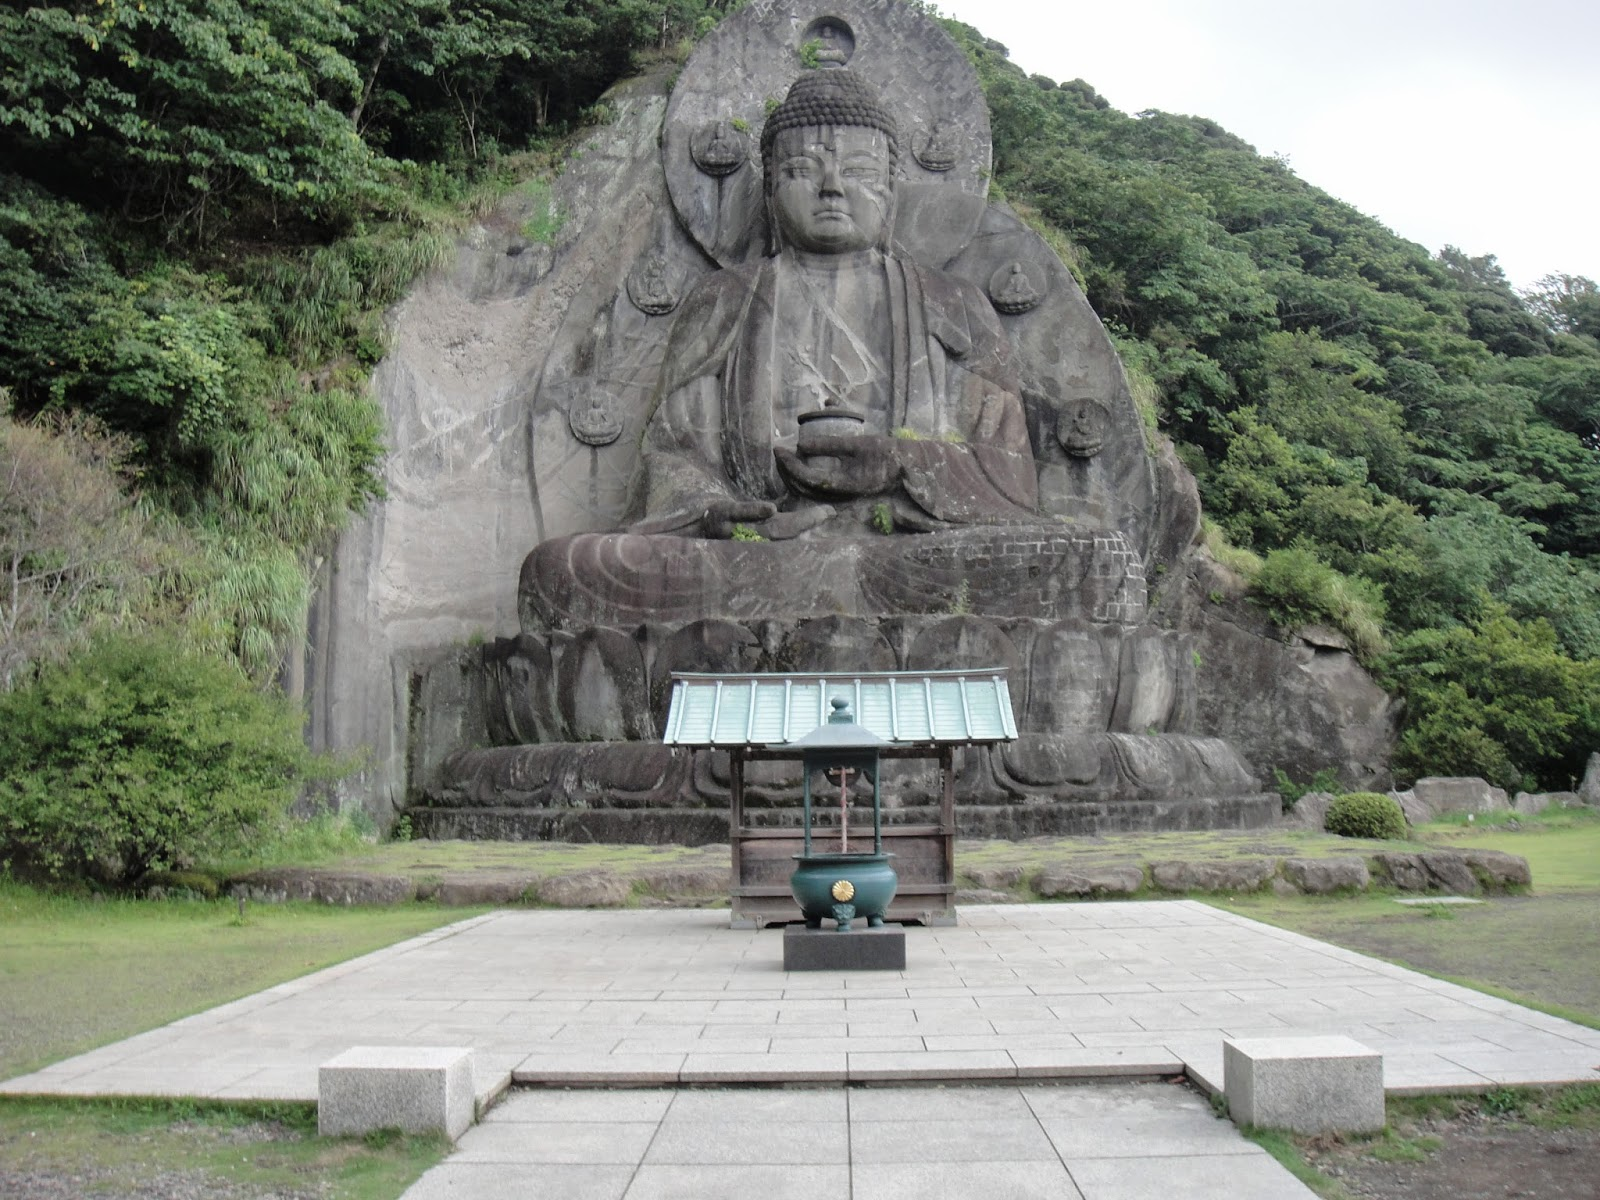 Tallest Buddha statue in Japan